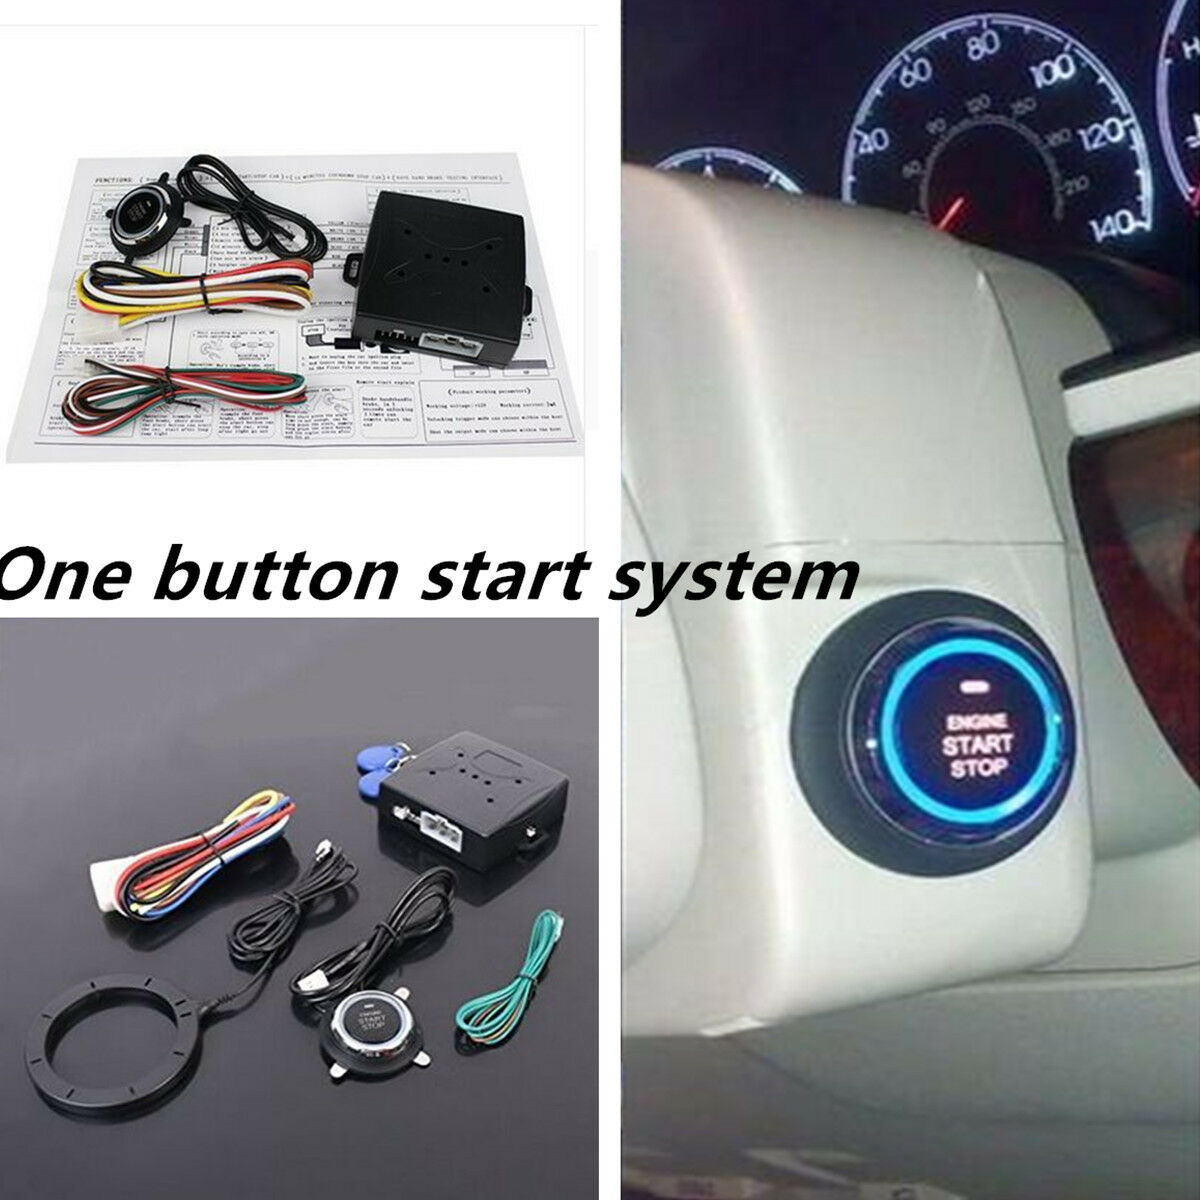 Dc 12v Keyless Entry Car Suv Engine Push Start On Lock Ignition Immobilizer